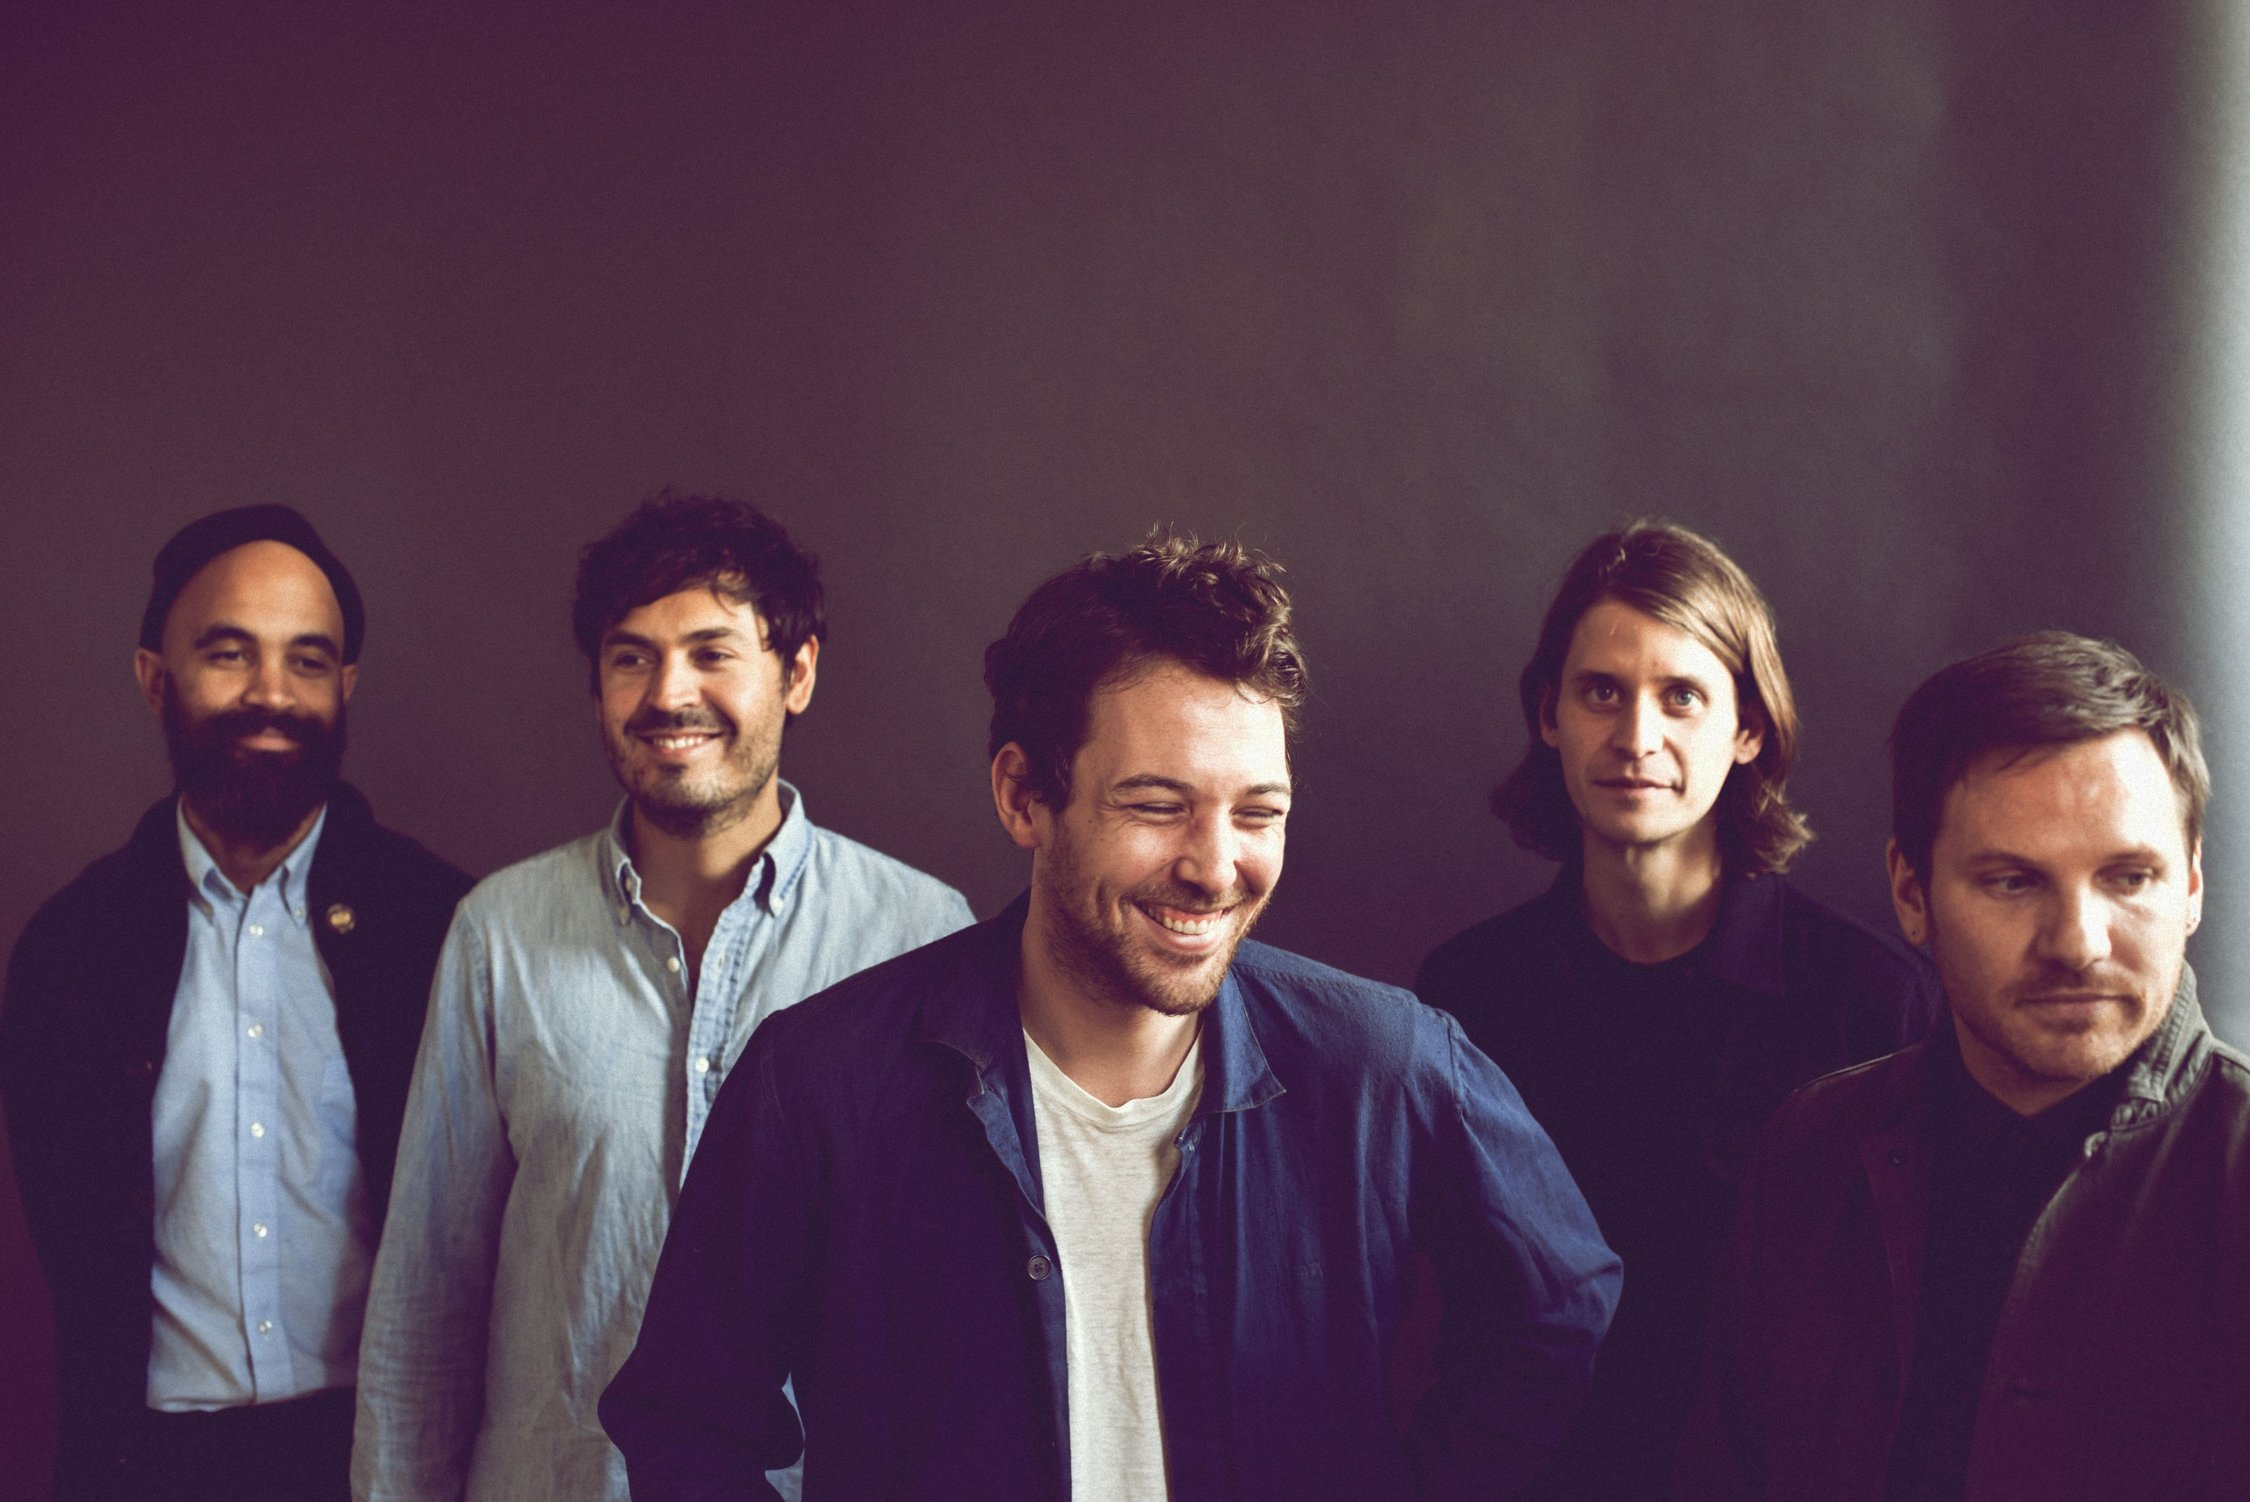 rsz_fleet-foxes-press-2017.jpg